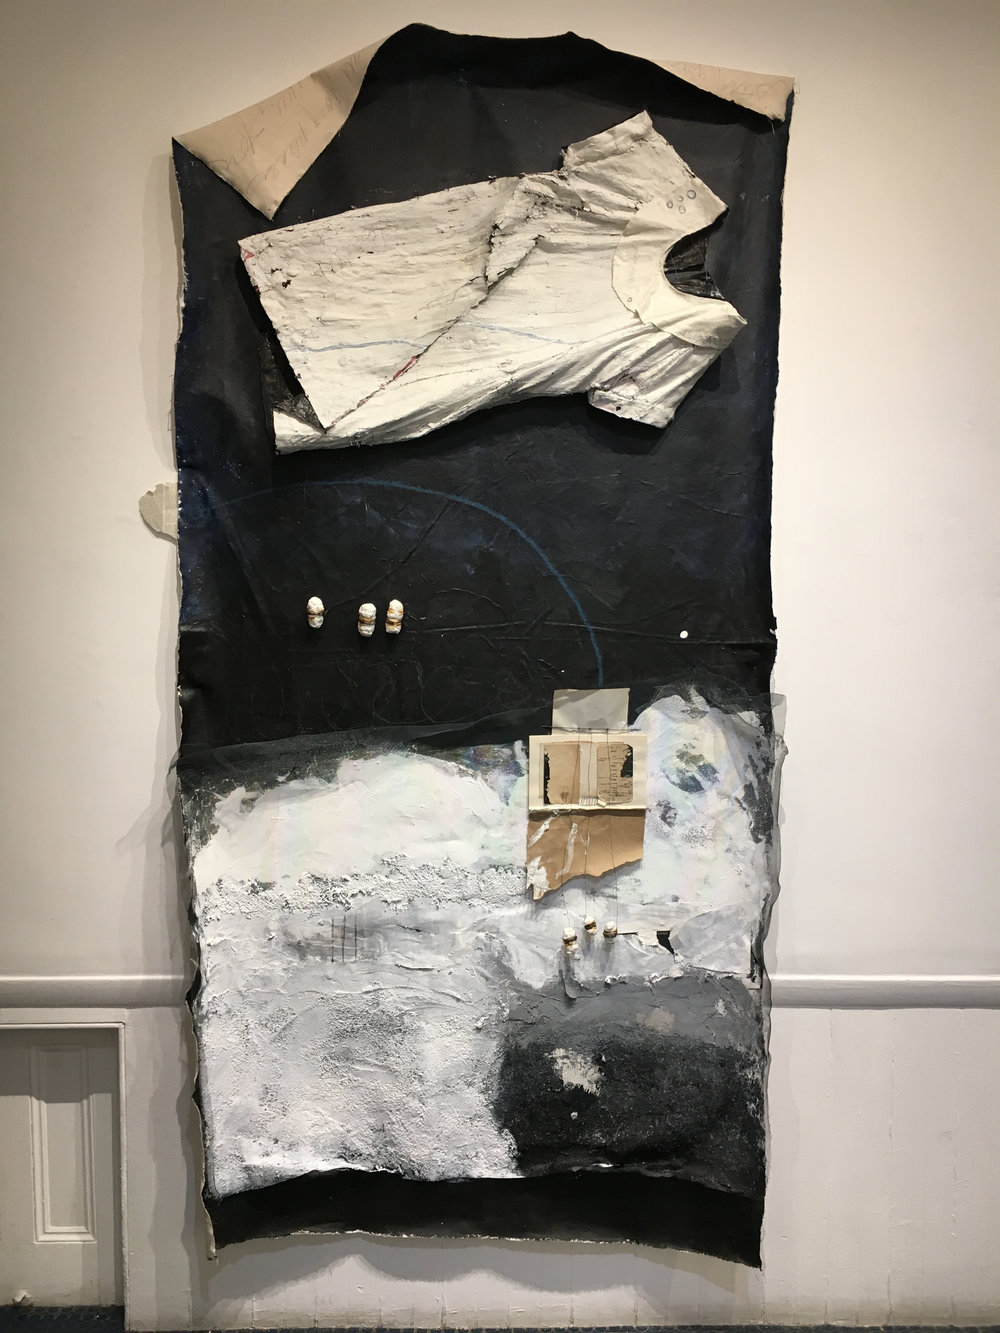 Pupal . 2017. Canvas, paint, paper, dress, plaster, wire. 5' x 6'.